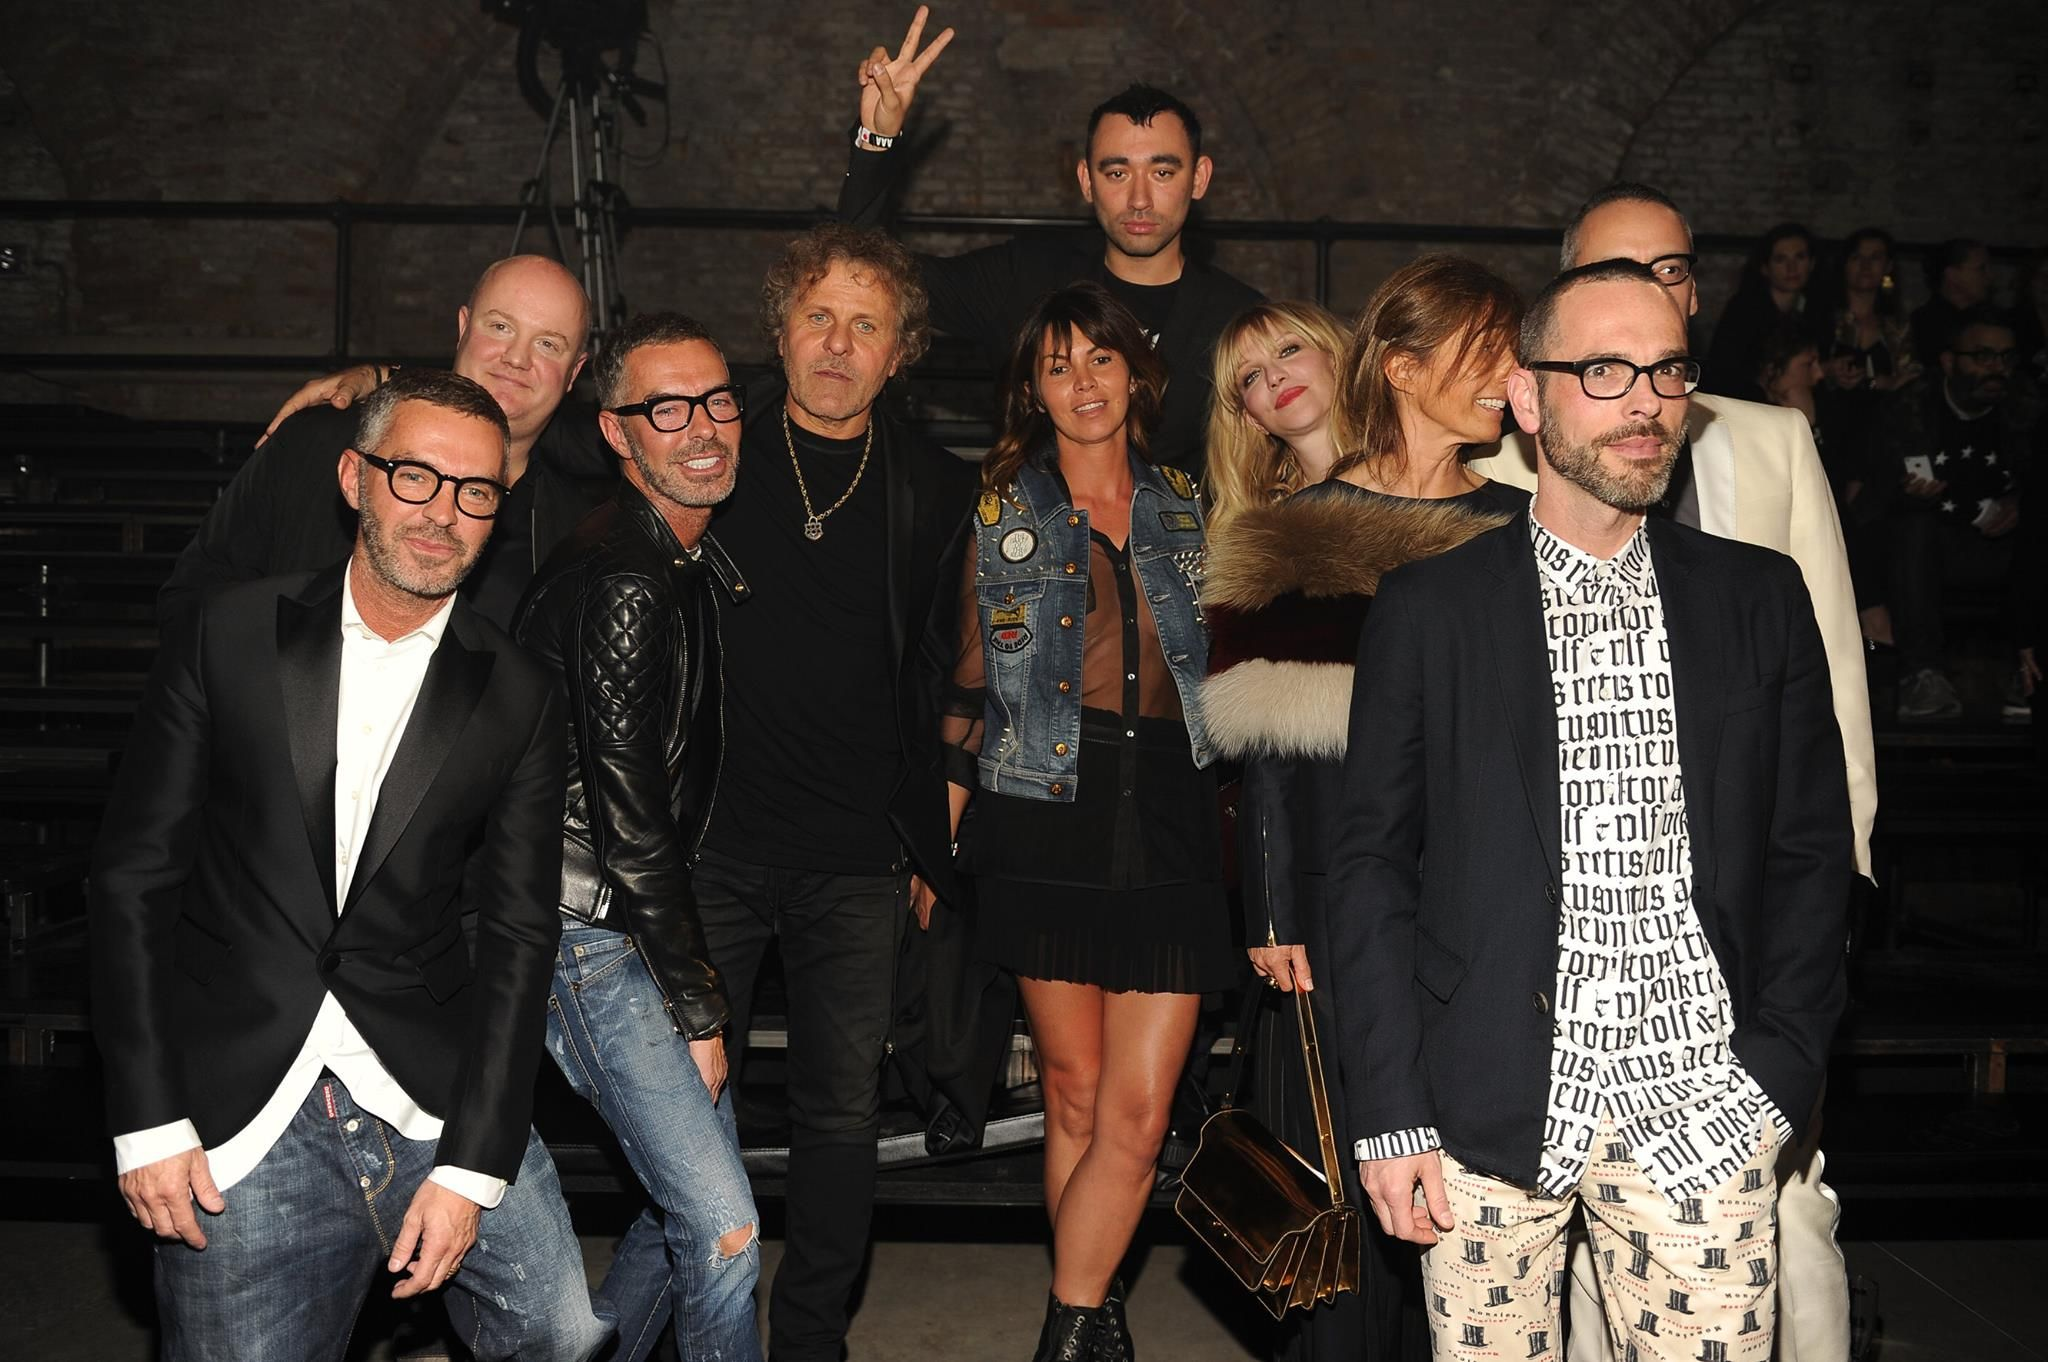 Renzo Rosso and OTB designers (and Courtney Love!) celebrate the finale of the #dieselvenice show: Dean & Dean Caten of DSQUARED2; Andreas Melbostad of Diesel Black Gold; Nicola Formichetti; Consuelo Castiglioni of Marni; Viktor Horsting & Rolf Snoeren of Viktor&Rolf